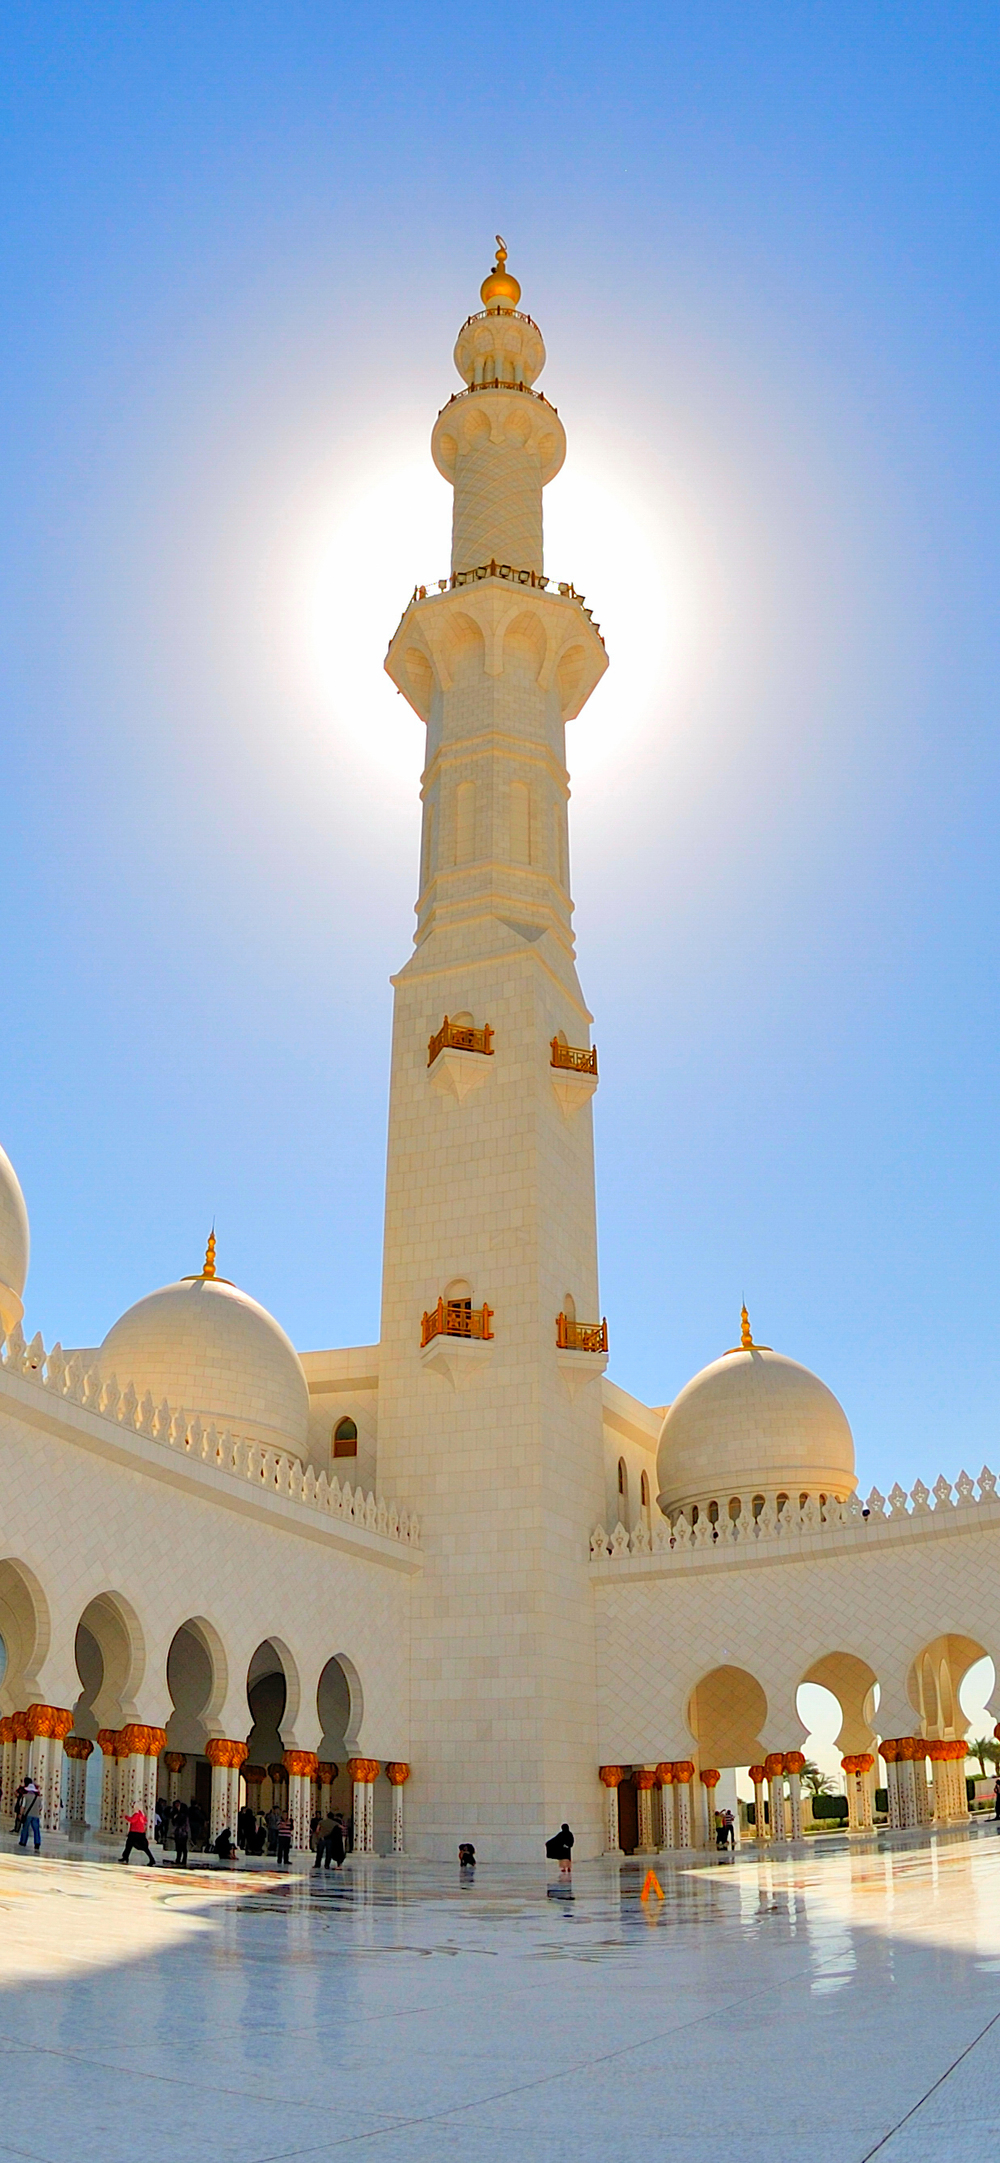 Minaret at Sheik Zayed Bin Sultan Al Nahyan Mosque.